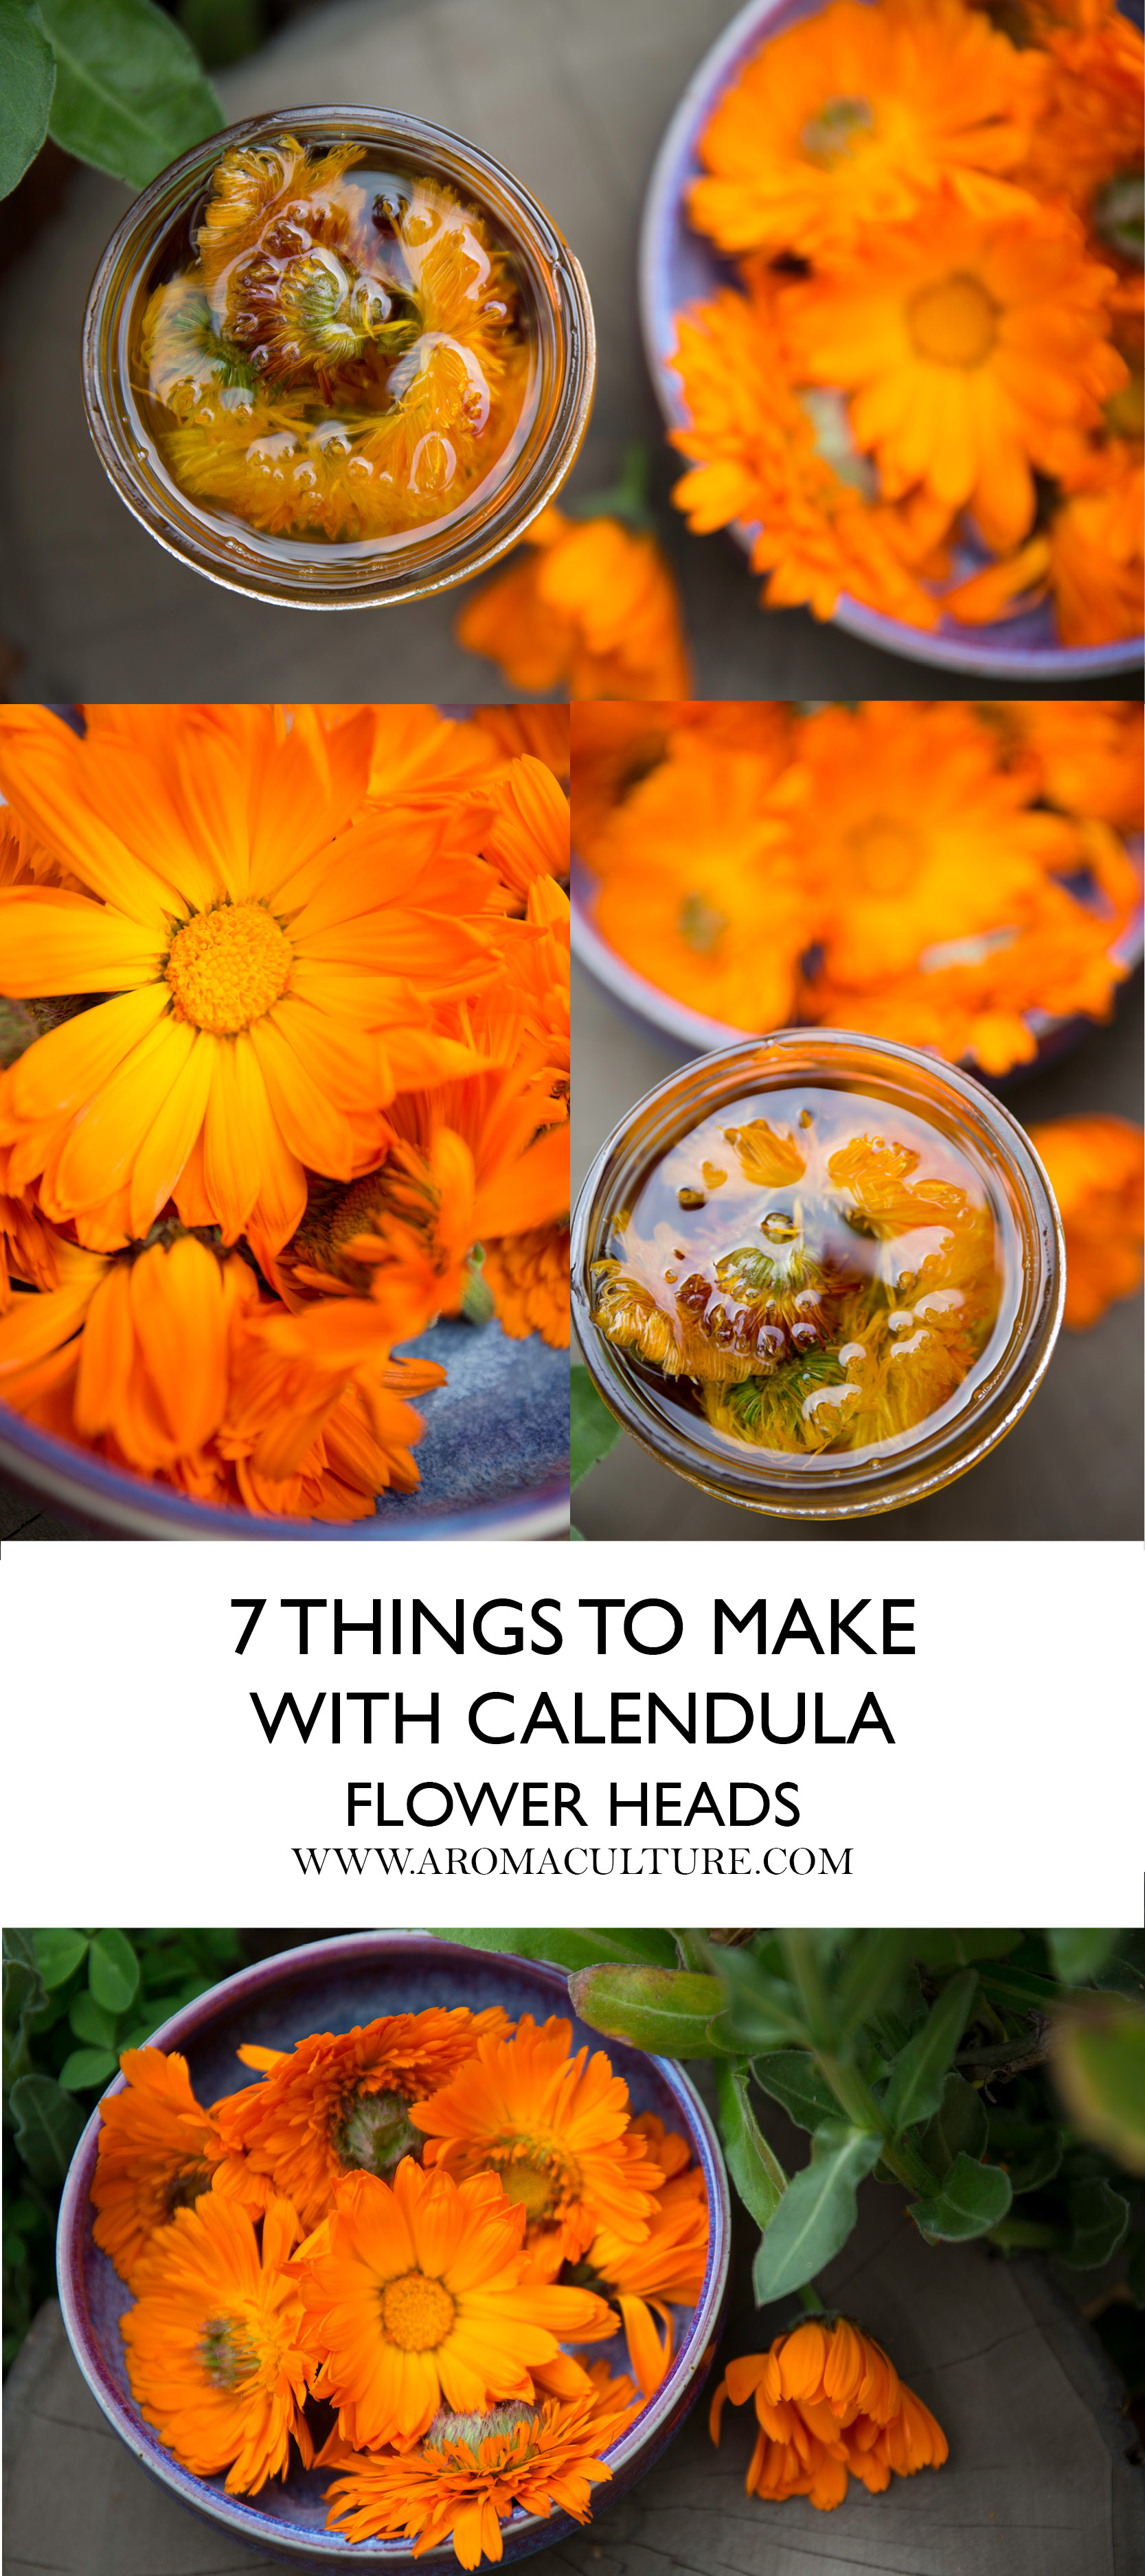 7 THINGS TO MAKE WITH CALENDULA FLOWER HEADS.jpg